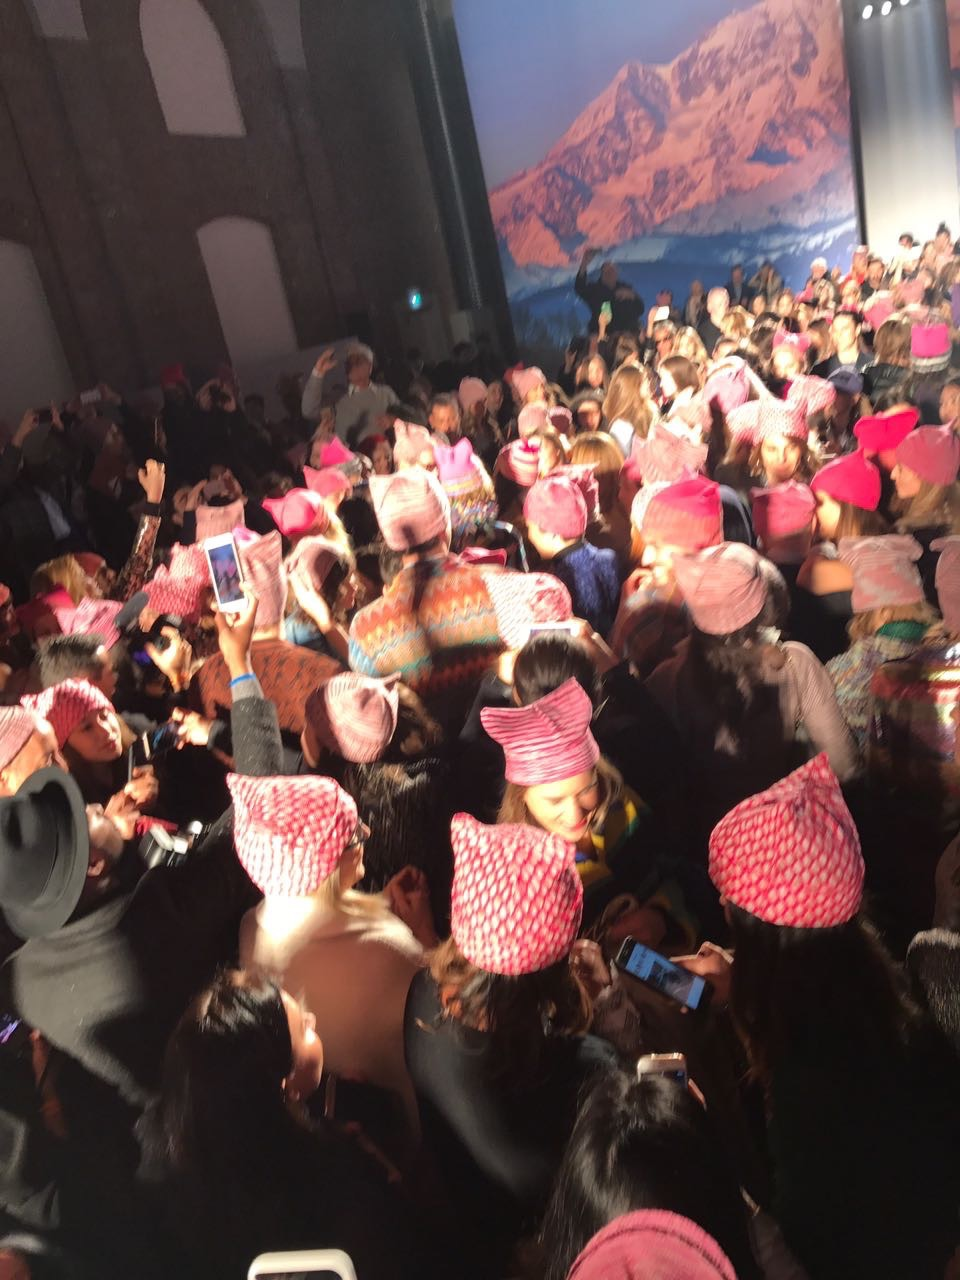 Missoni and Pink Hats. Pink and Yellow have been dominating on the runways this season.